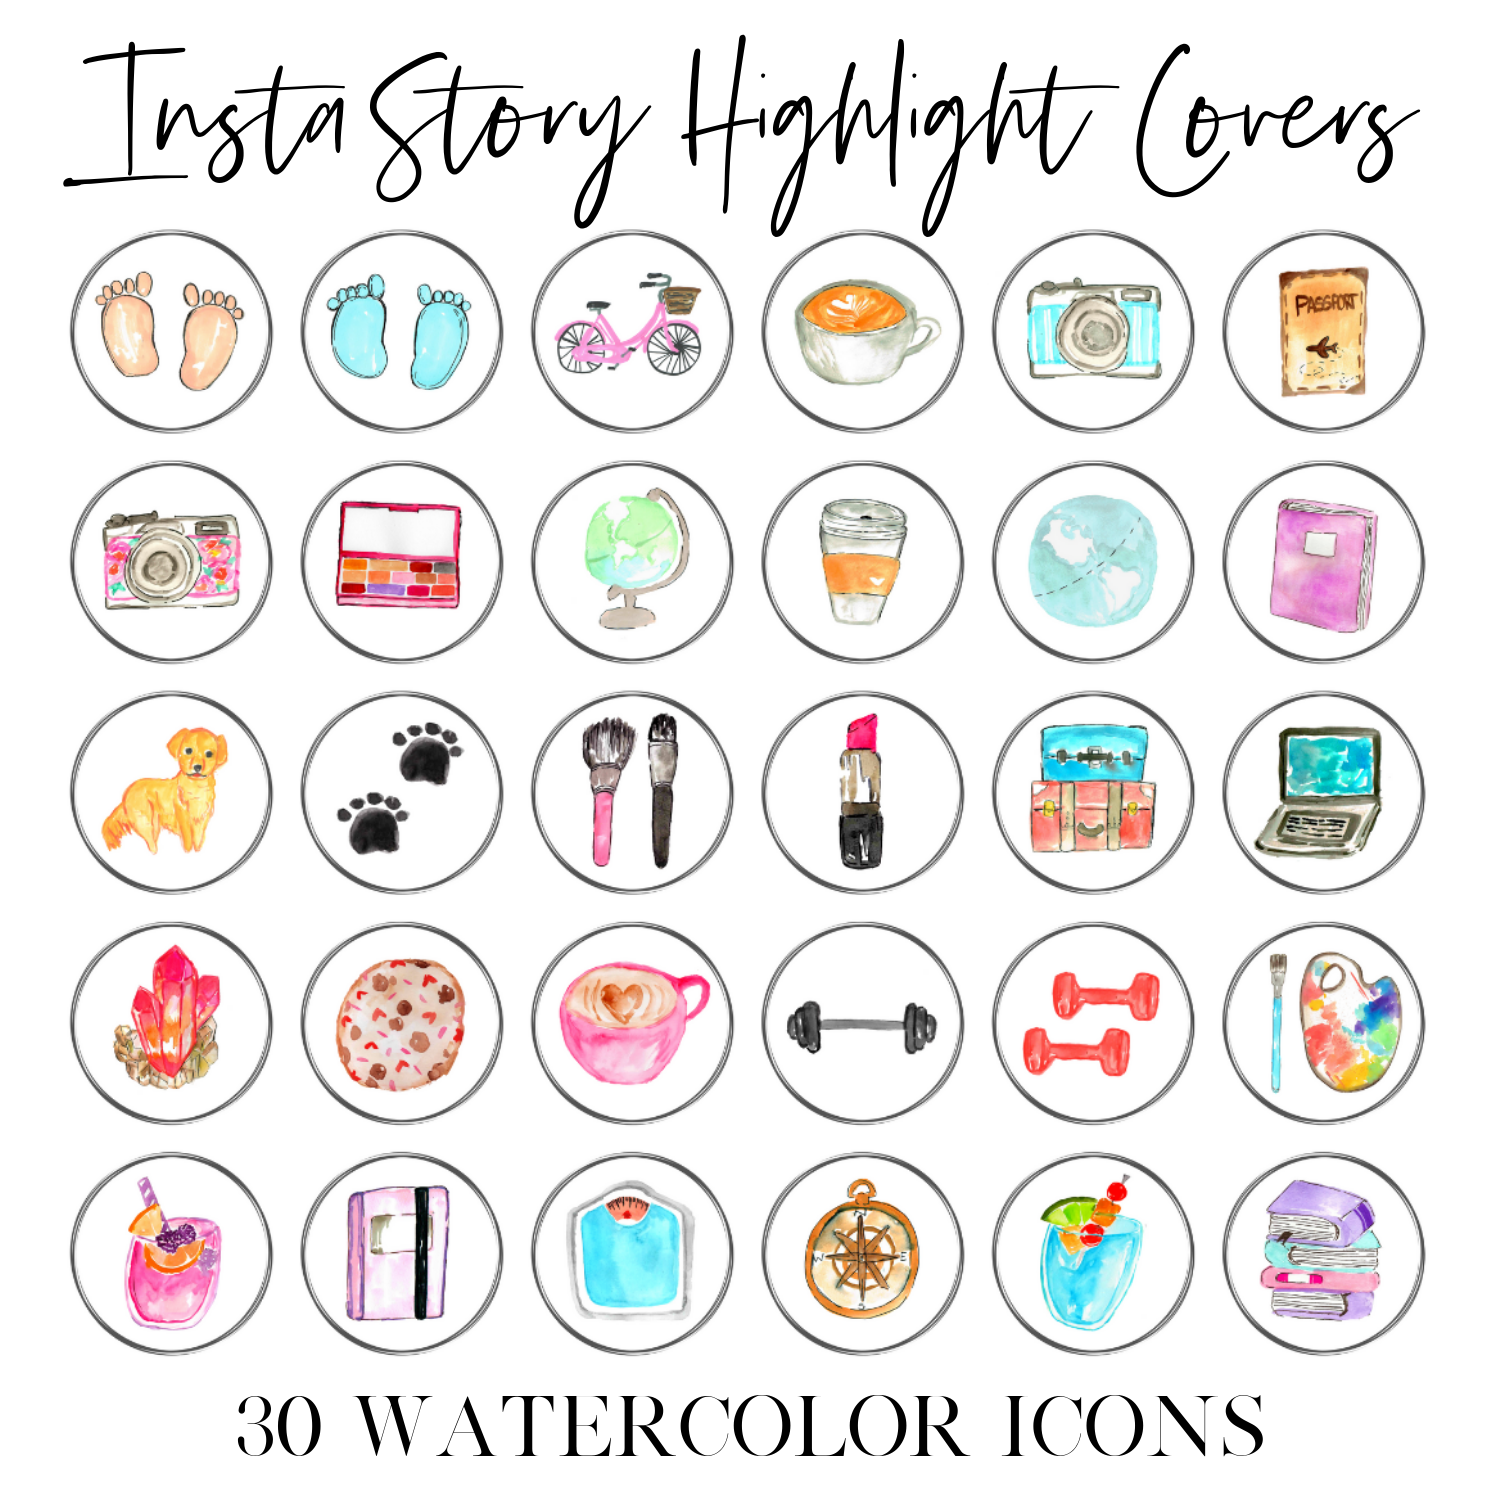 Instagram highlights icons